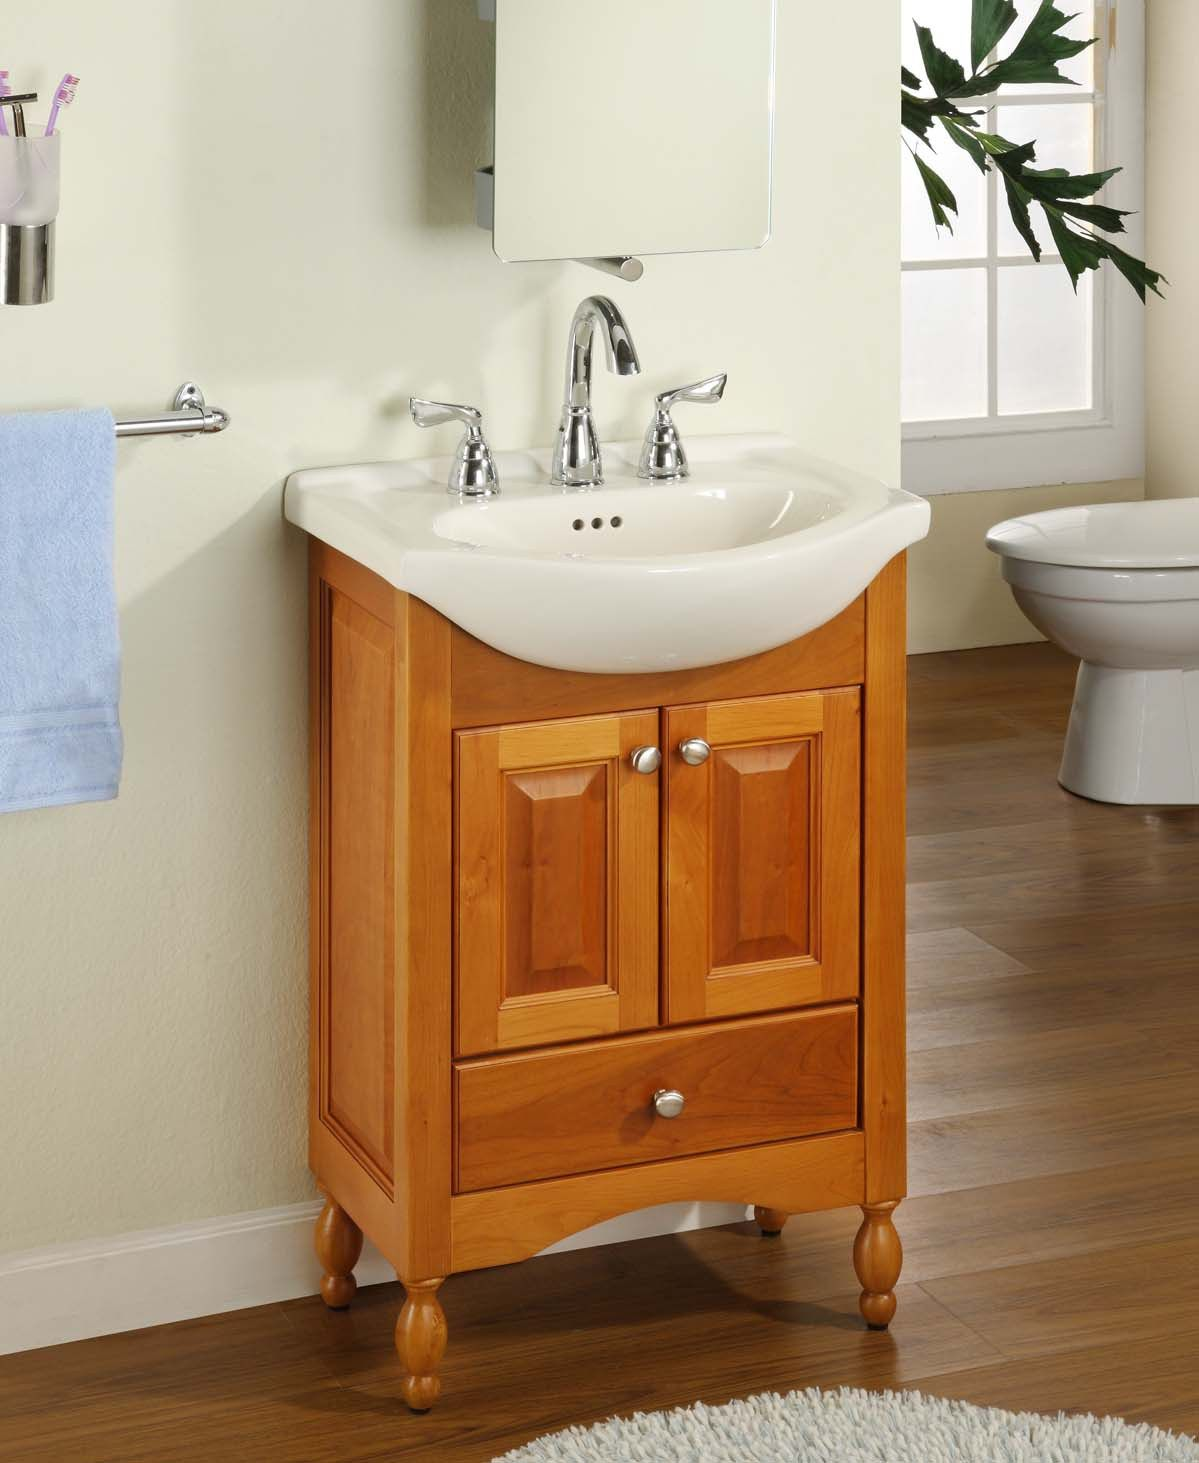 Narrow Depth Bathroom Vanity Base Theydesign Inside Narrow Depth Endearing Narrow Depth Bathroom Vanity Review